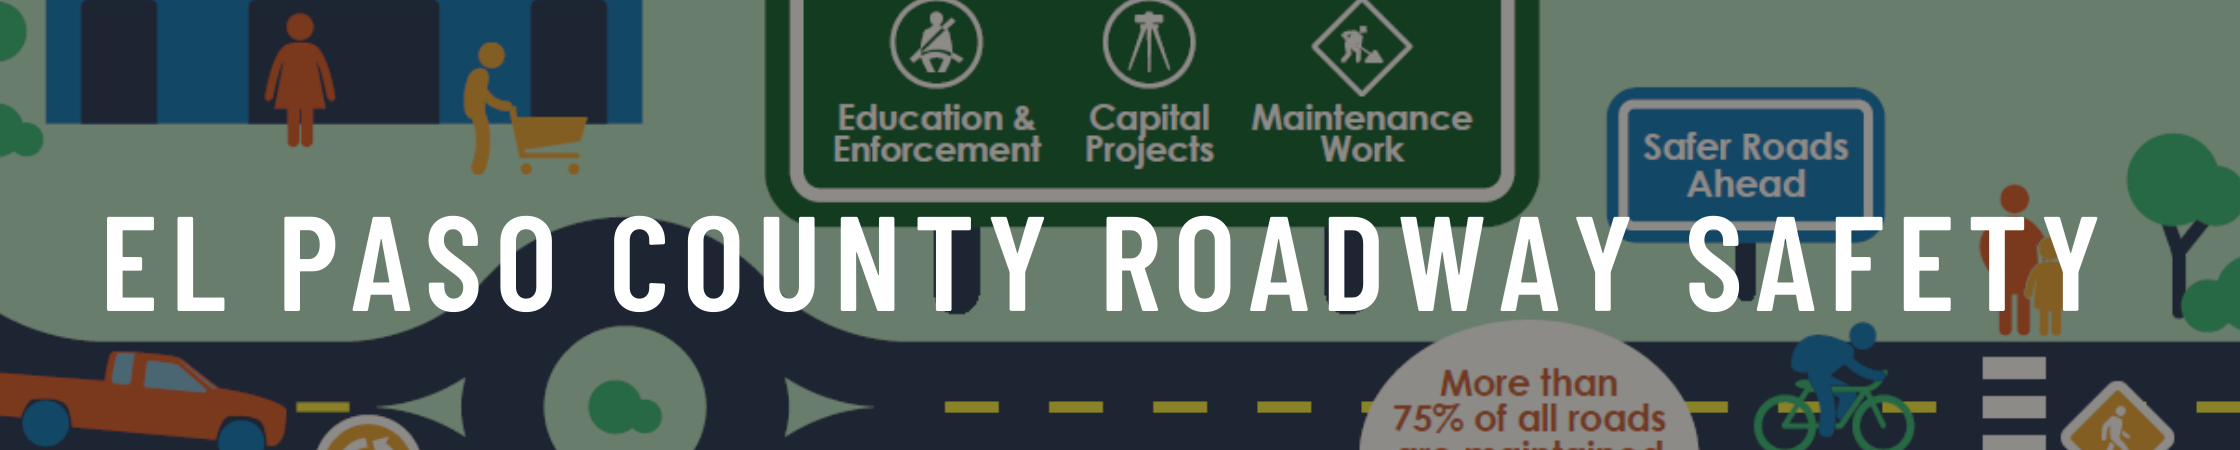 El Paso County Road Safety Plan